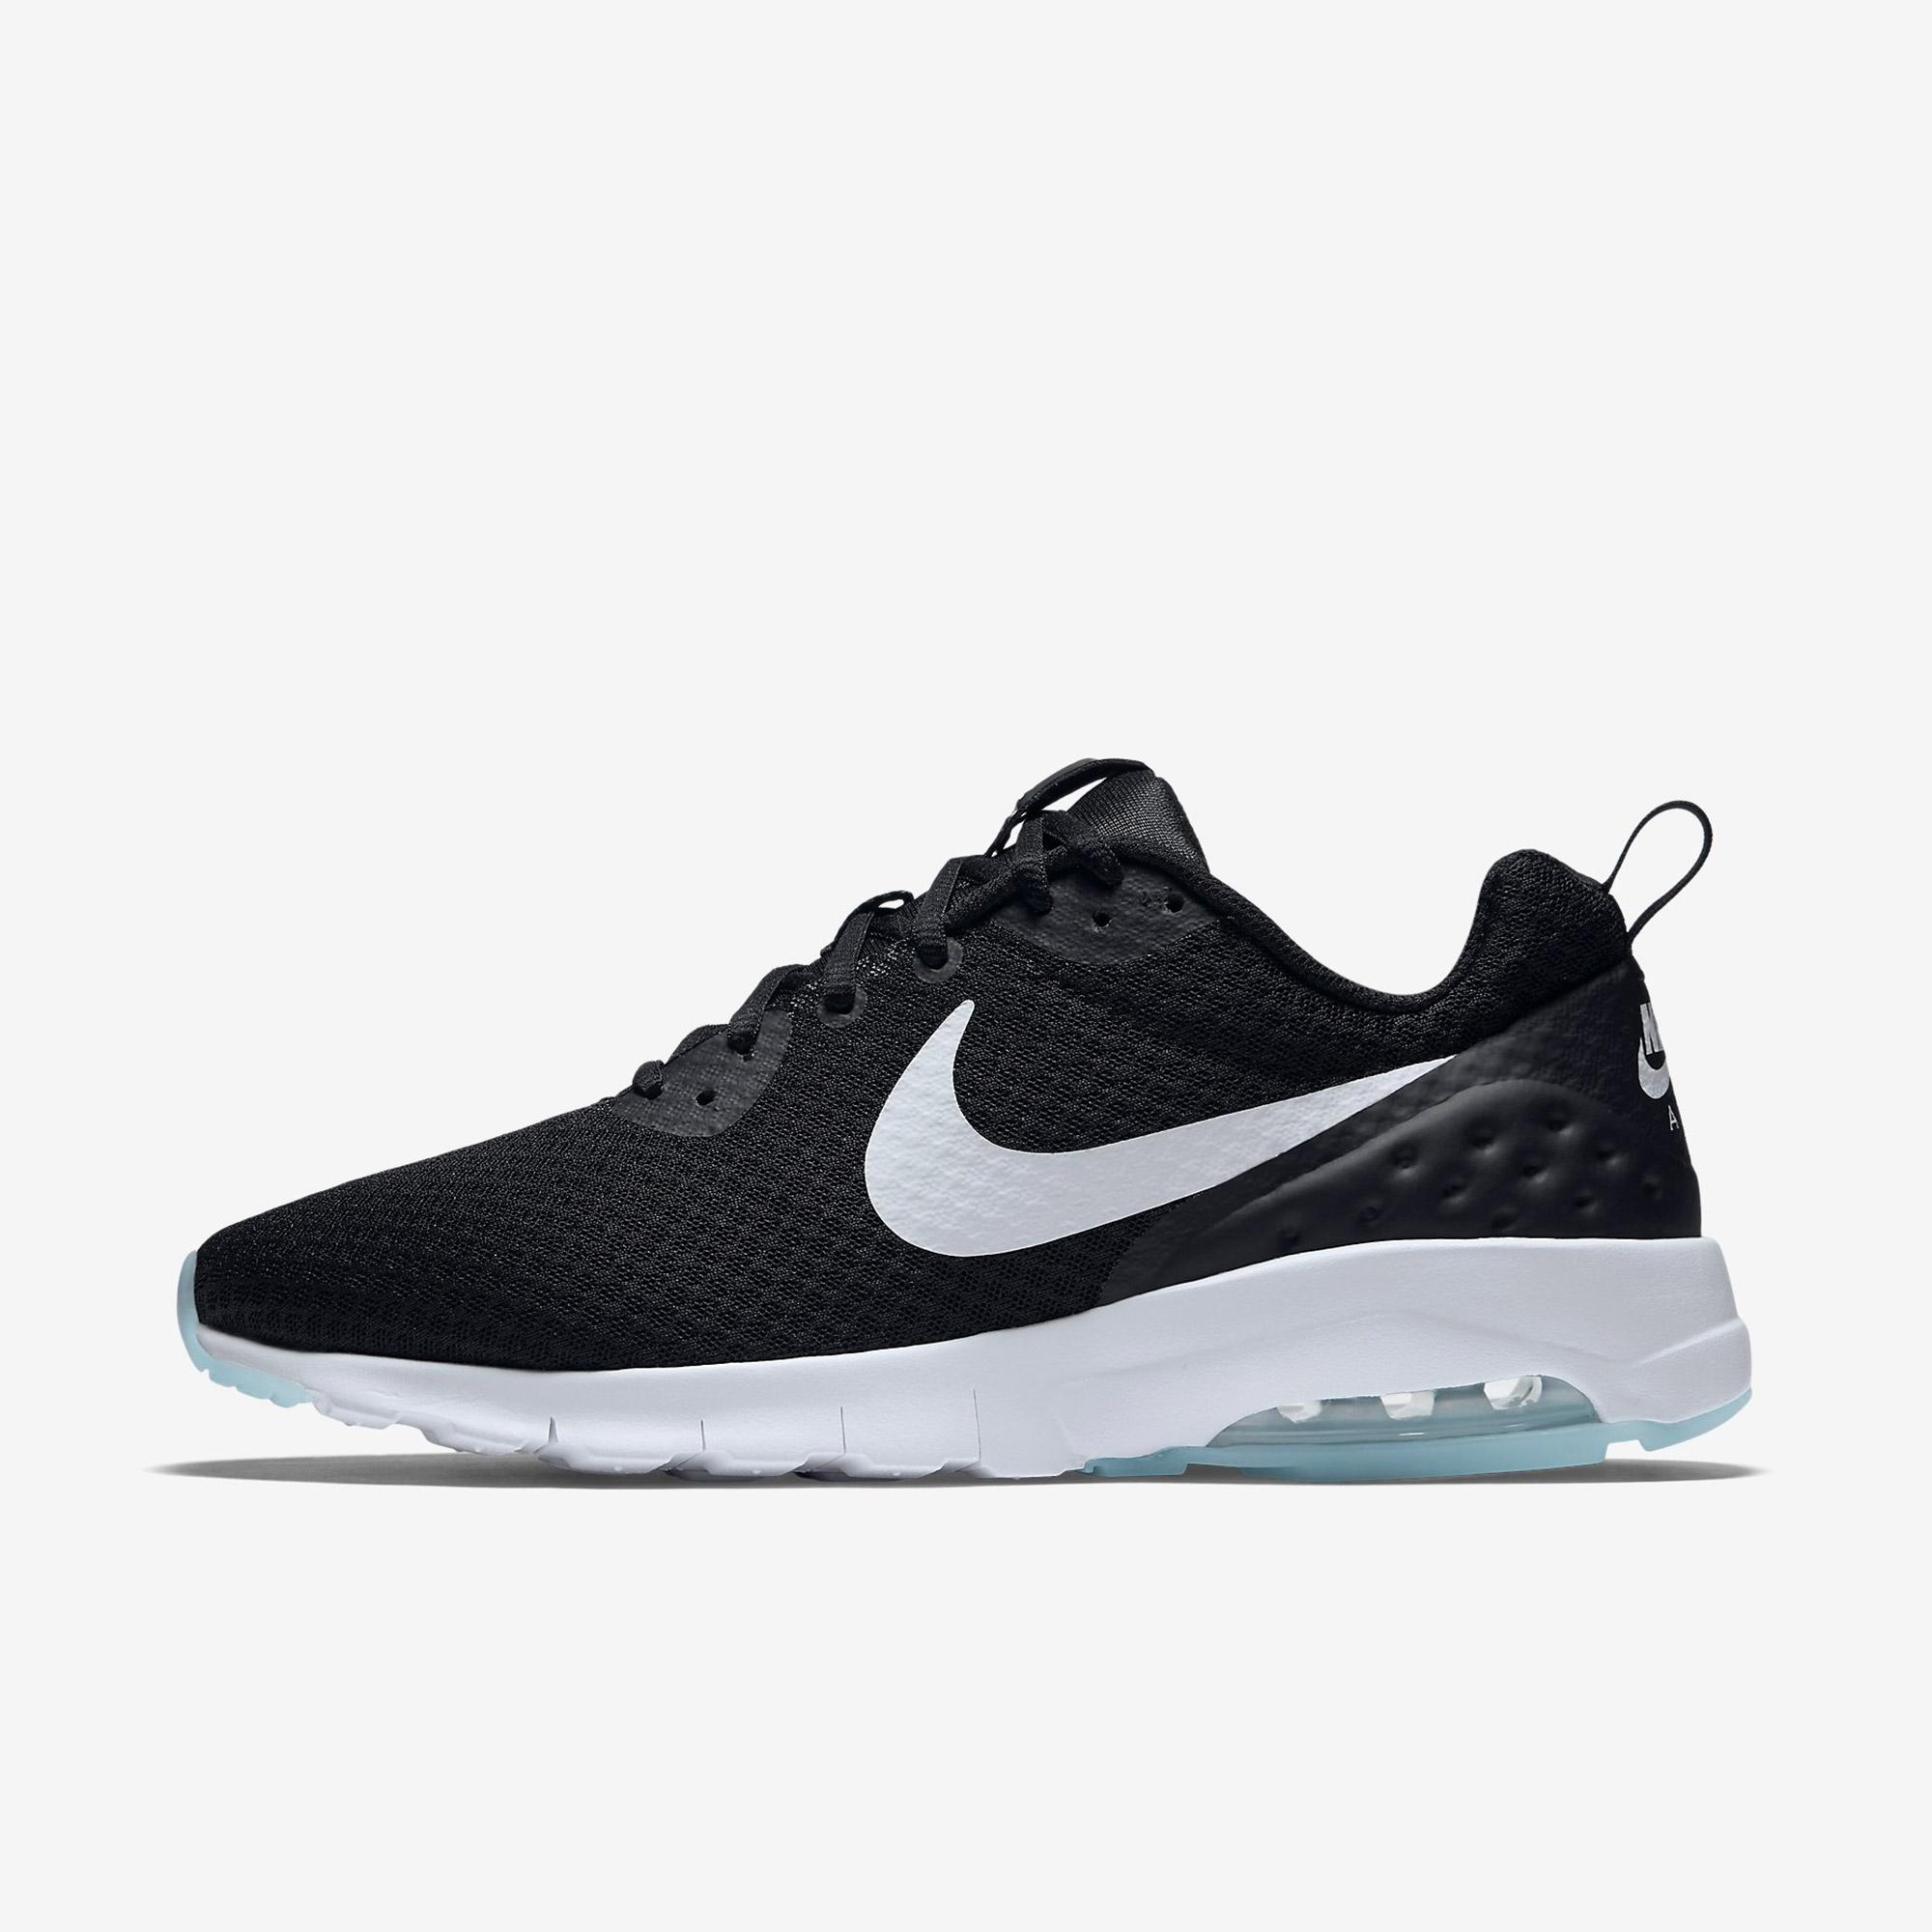 new product e1bdc 25ed6 Nike Air Max Canada : Nike Sneakers Online at Best Prices ...